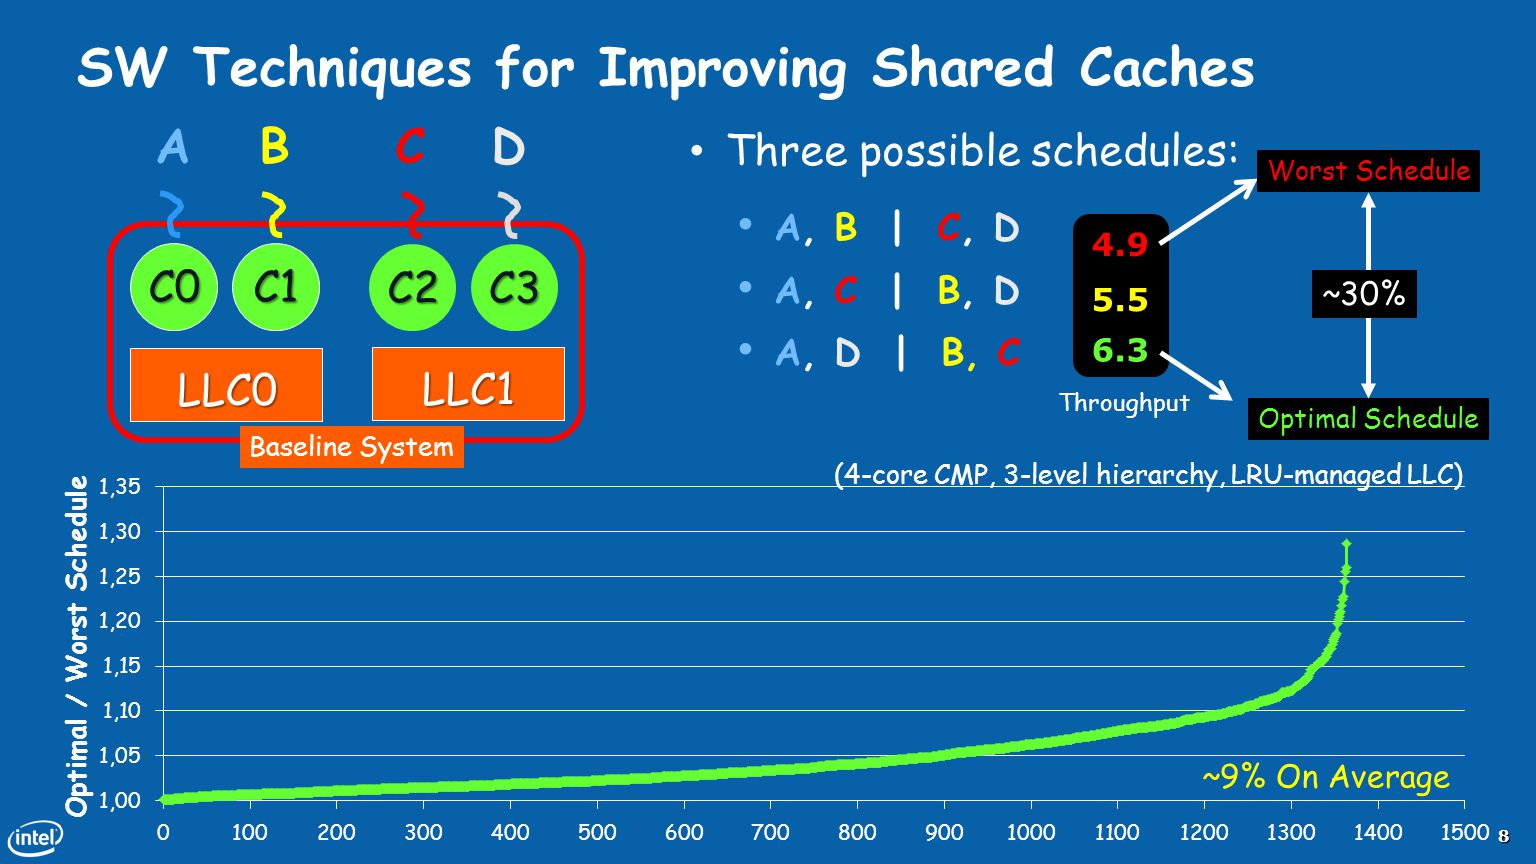 SW Techniques for Improving Shared Caches